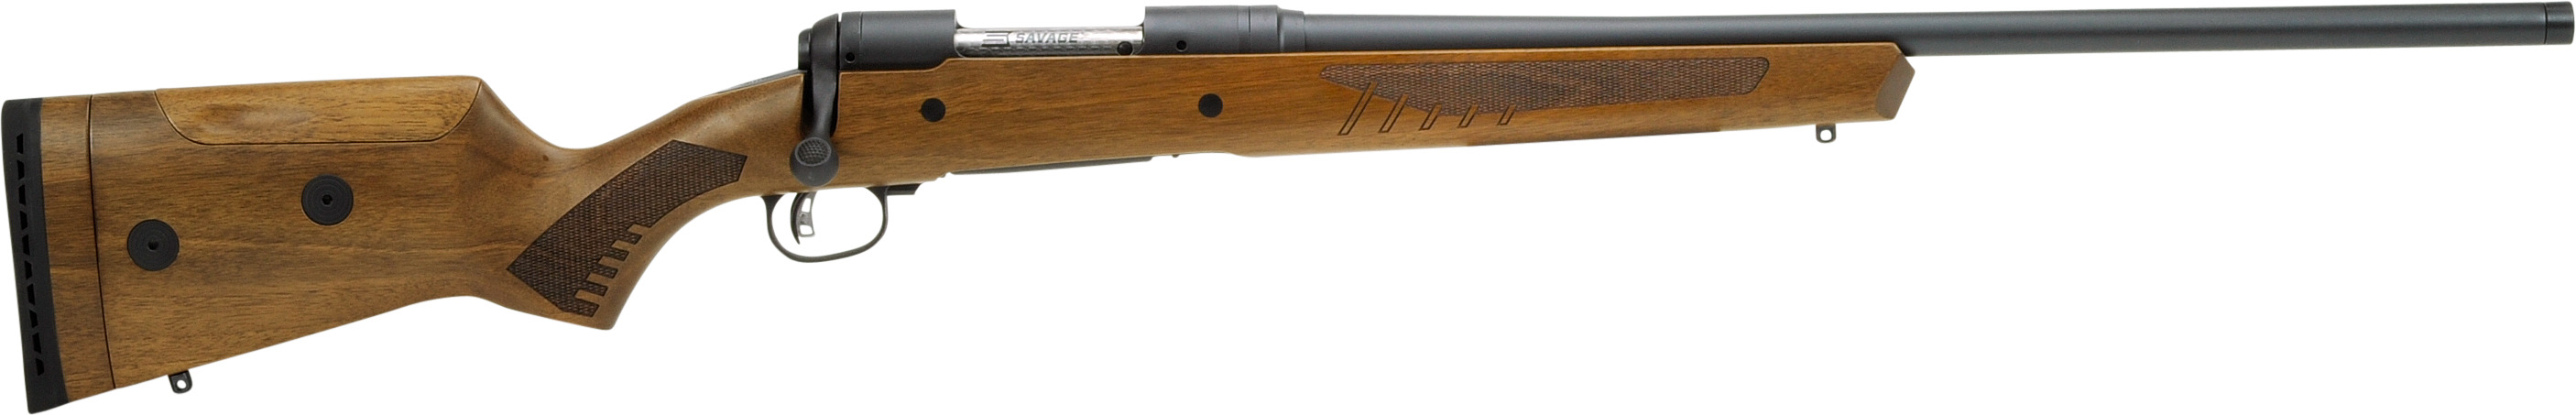 Savage Arms 110 Classic 243 Win